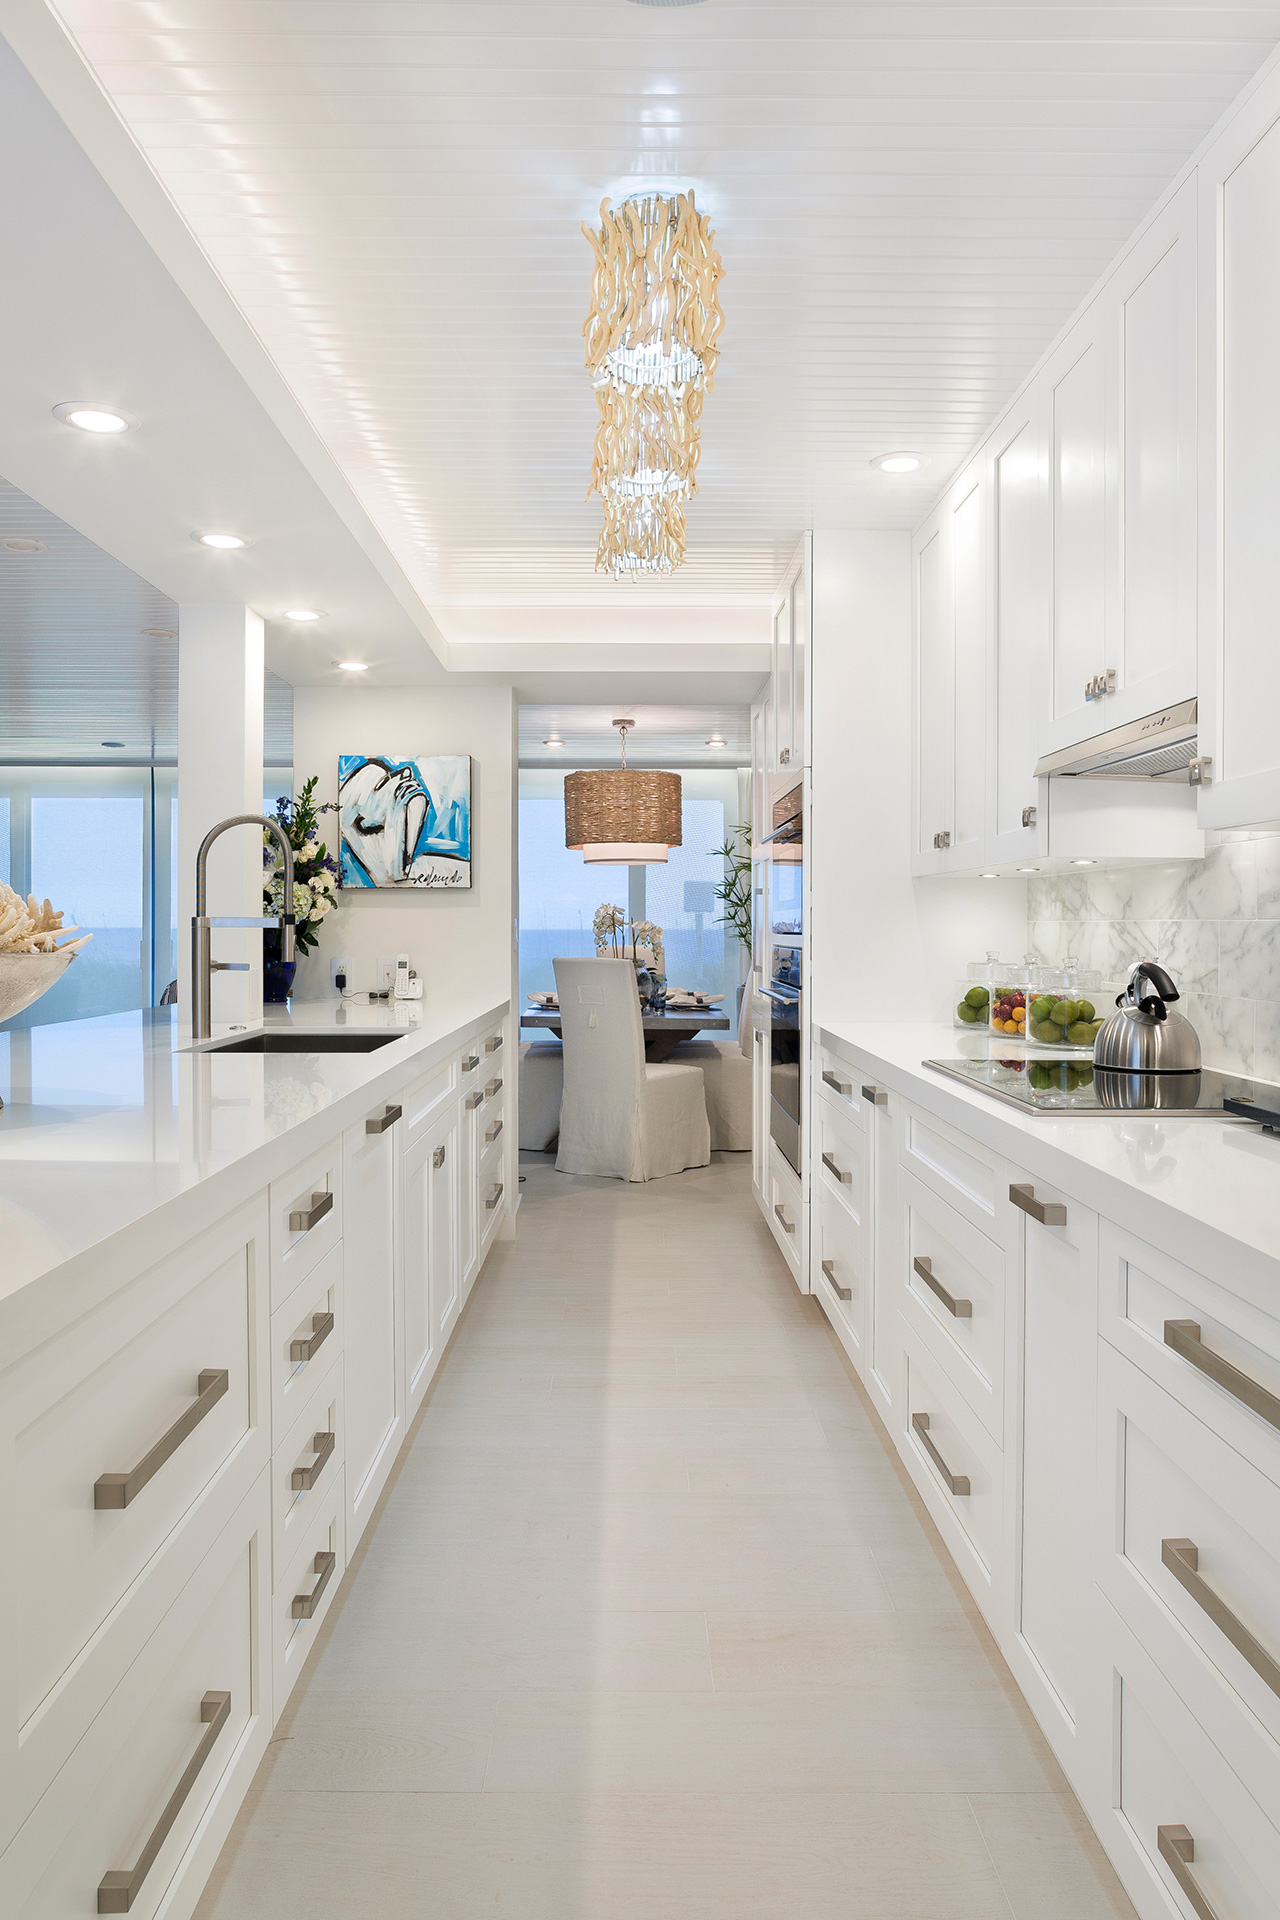 South Ocean Boulevard - The Place For Kitchens and Baths